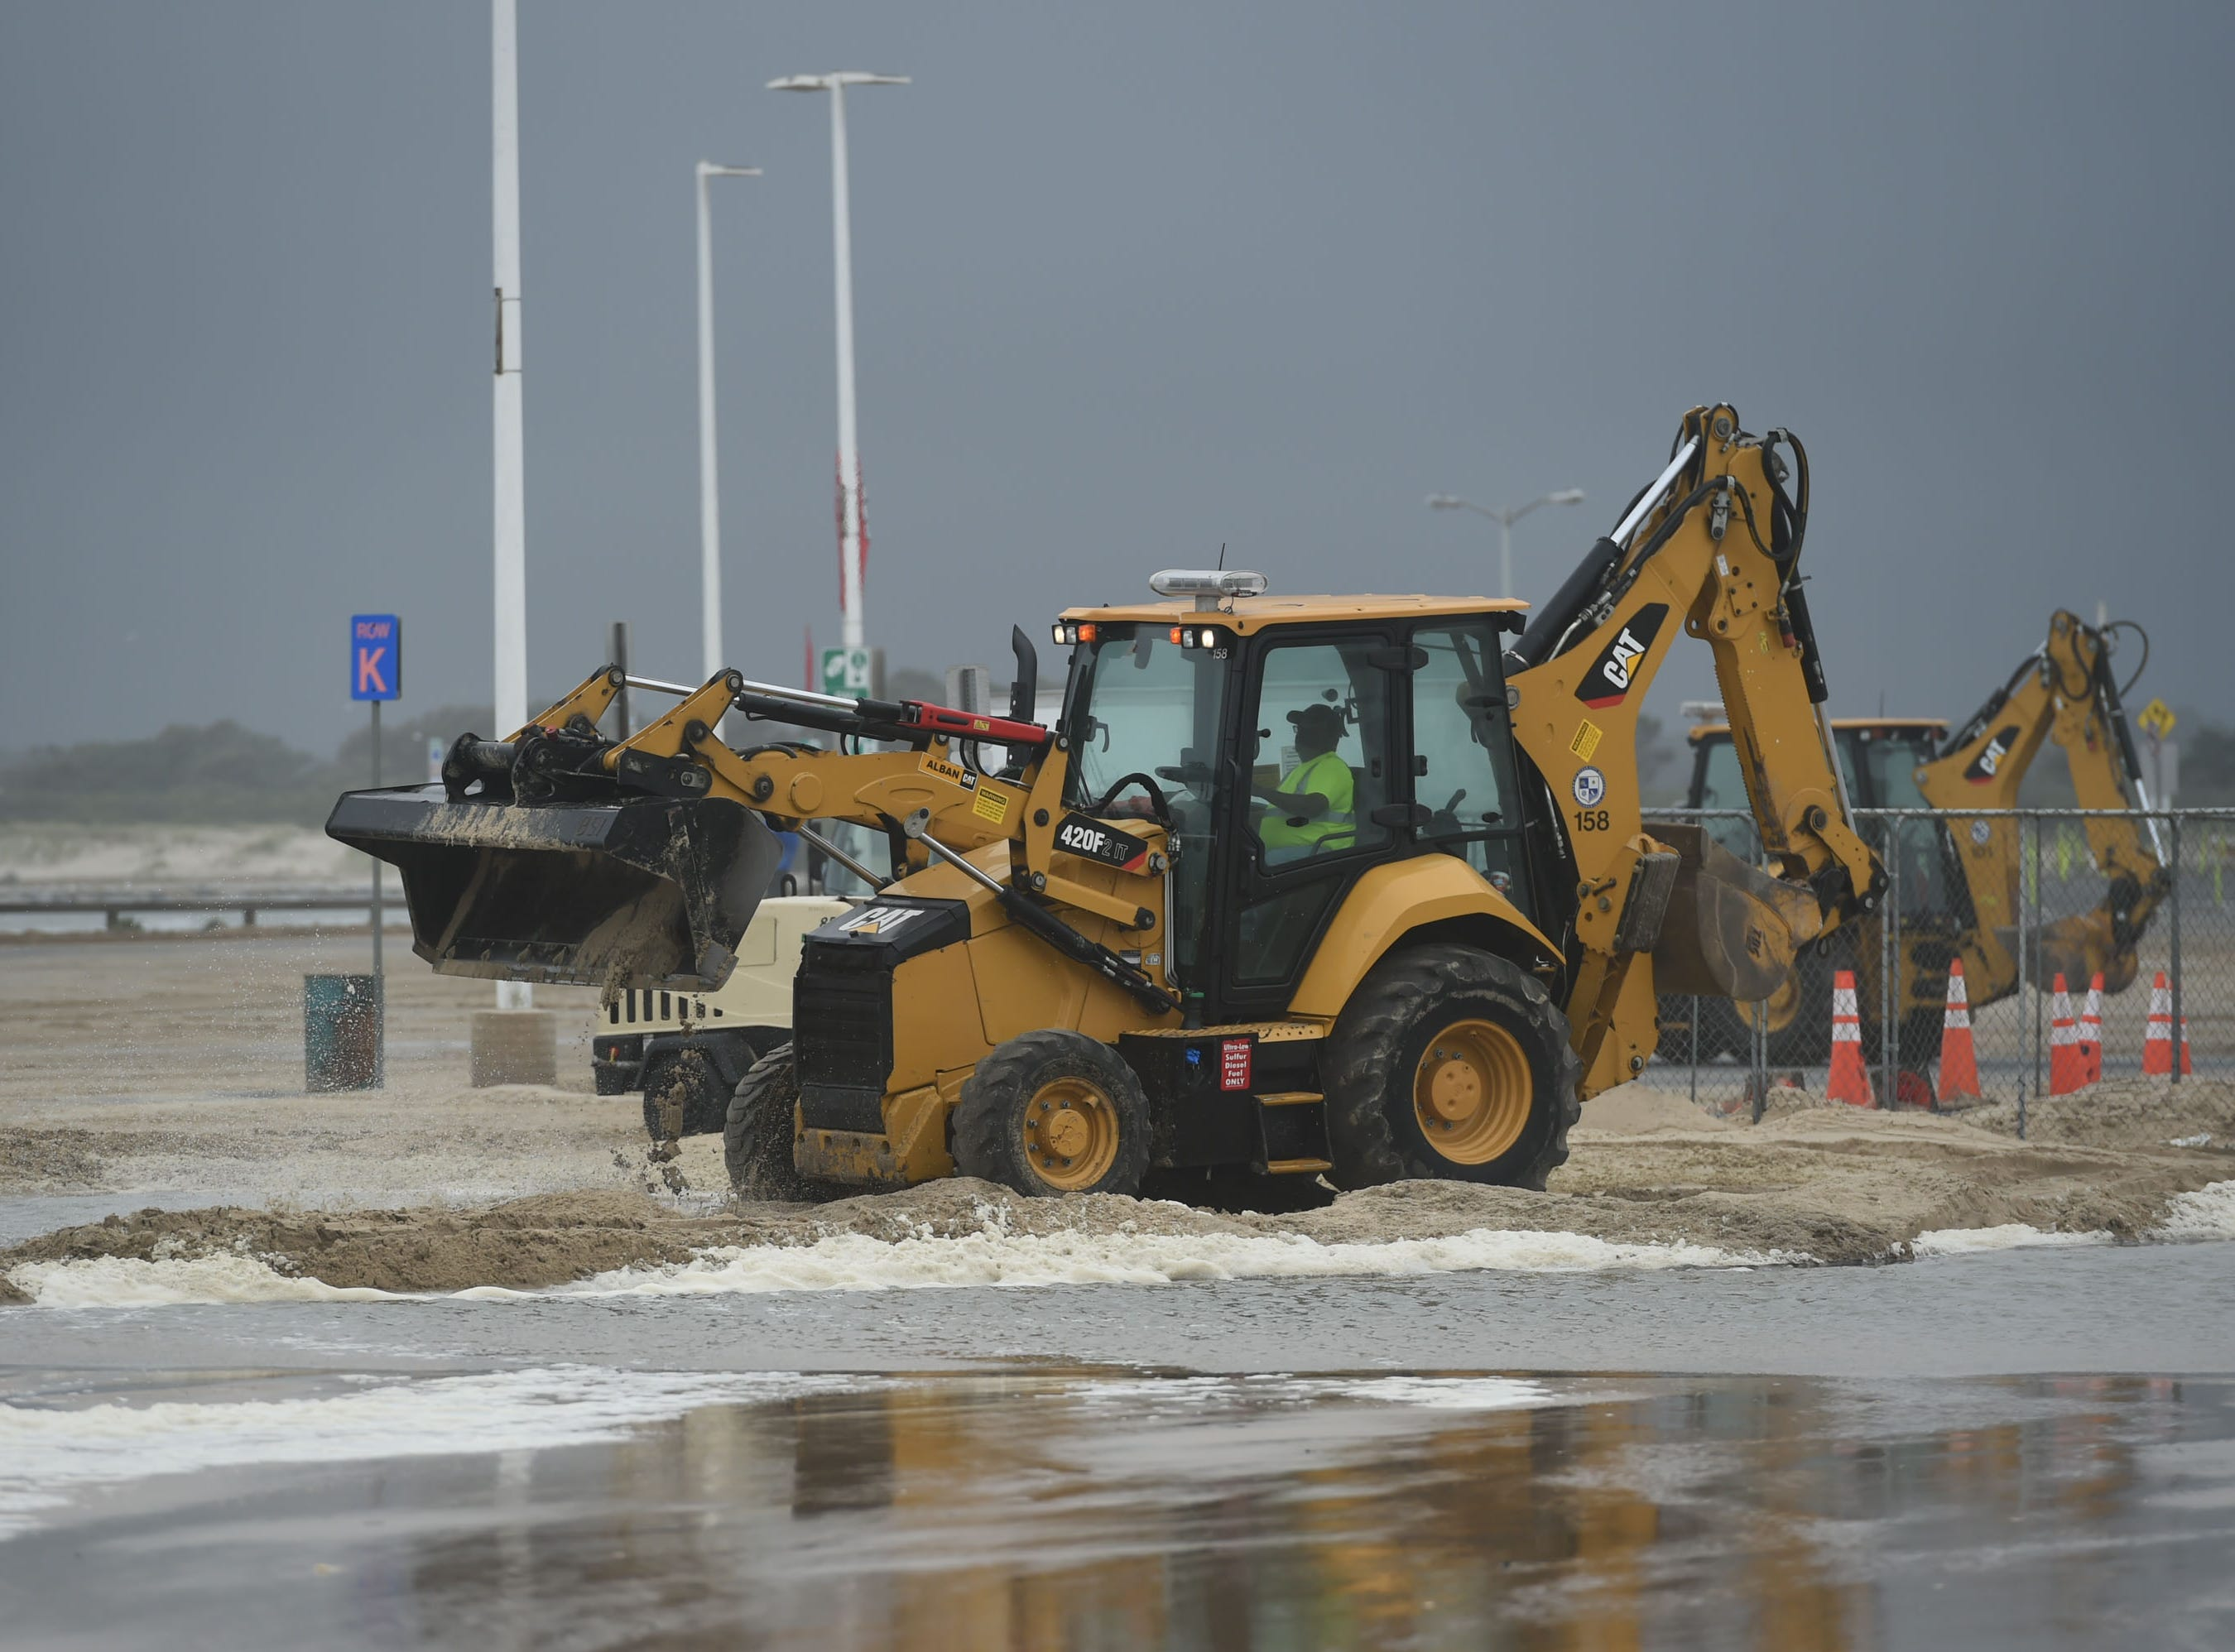 Ocean City workers attempt to clear sand from the Inlet parking lot on Monday, Sept. 10, 2018.